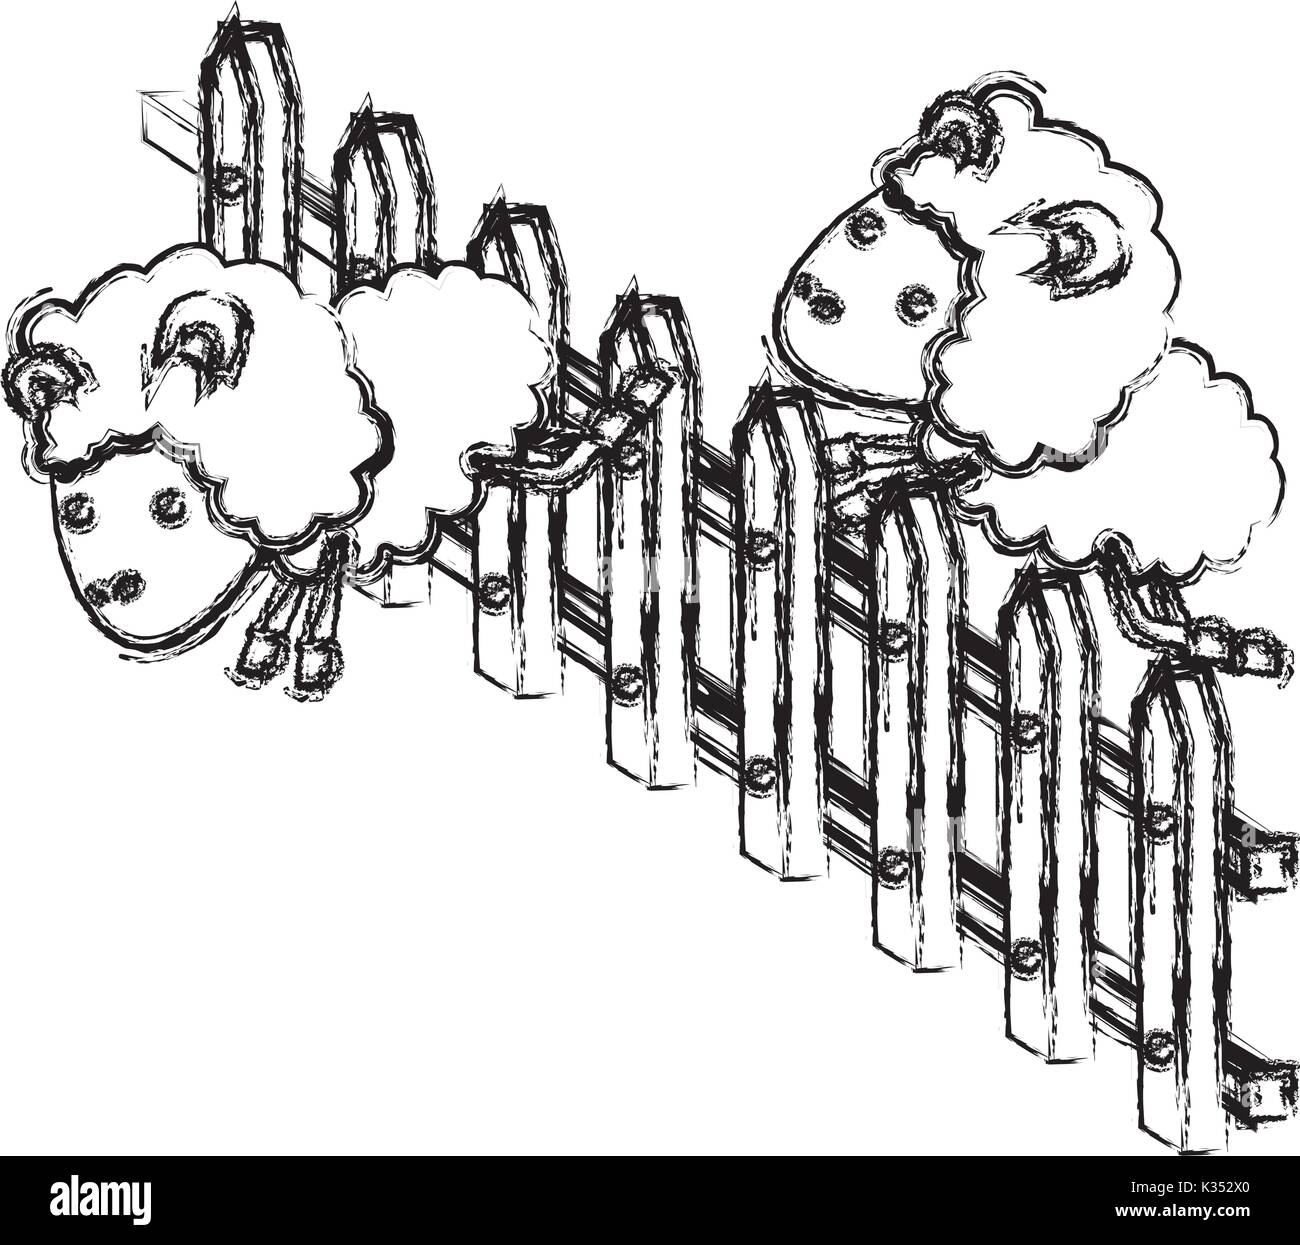 sheep animal couple jumping a wooden fence blurred silhouette on white background - Stock Image